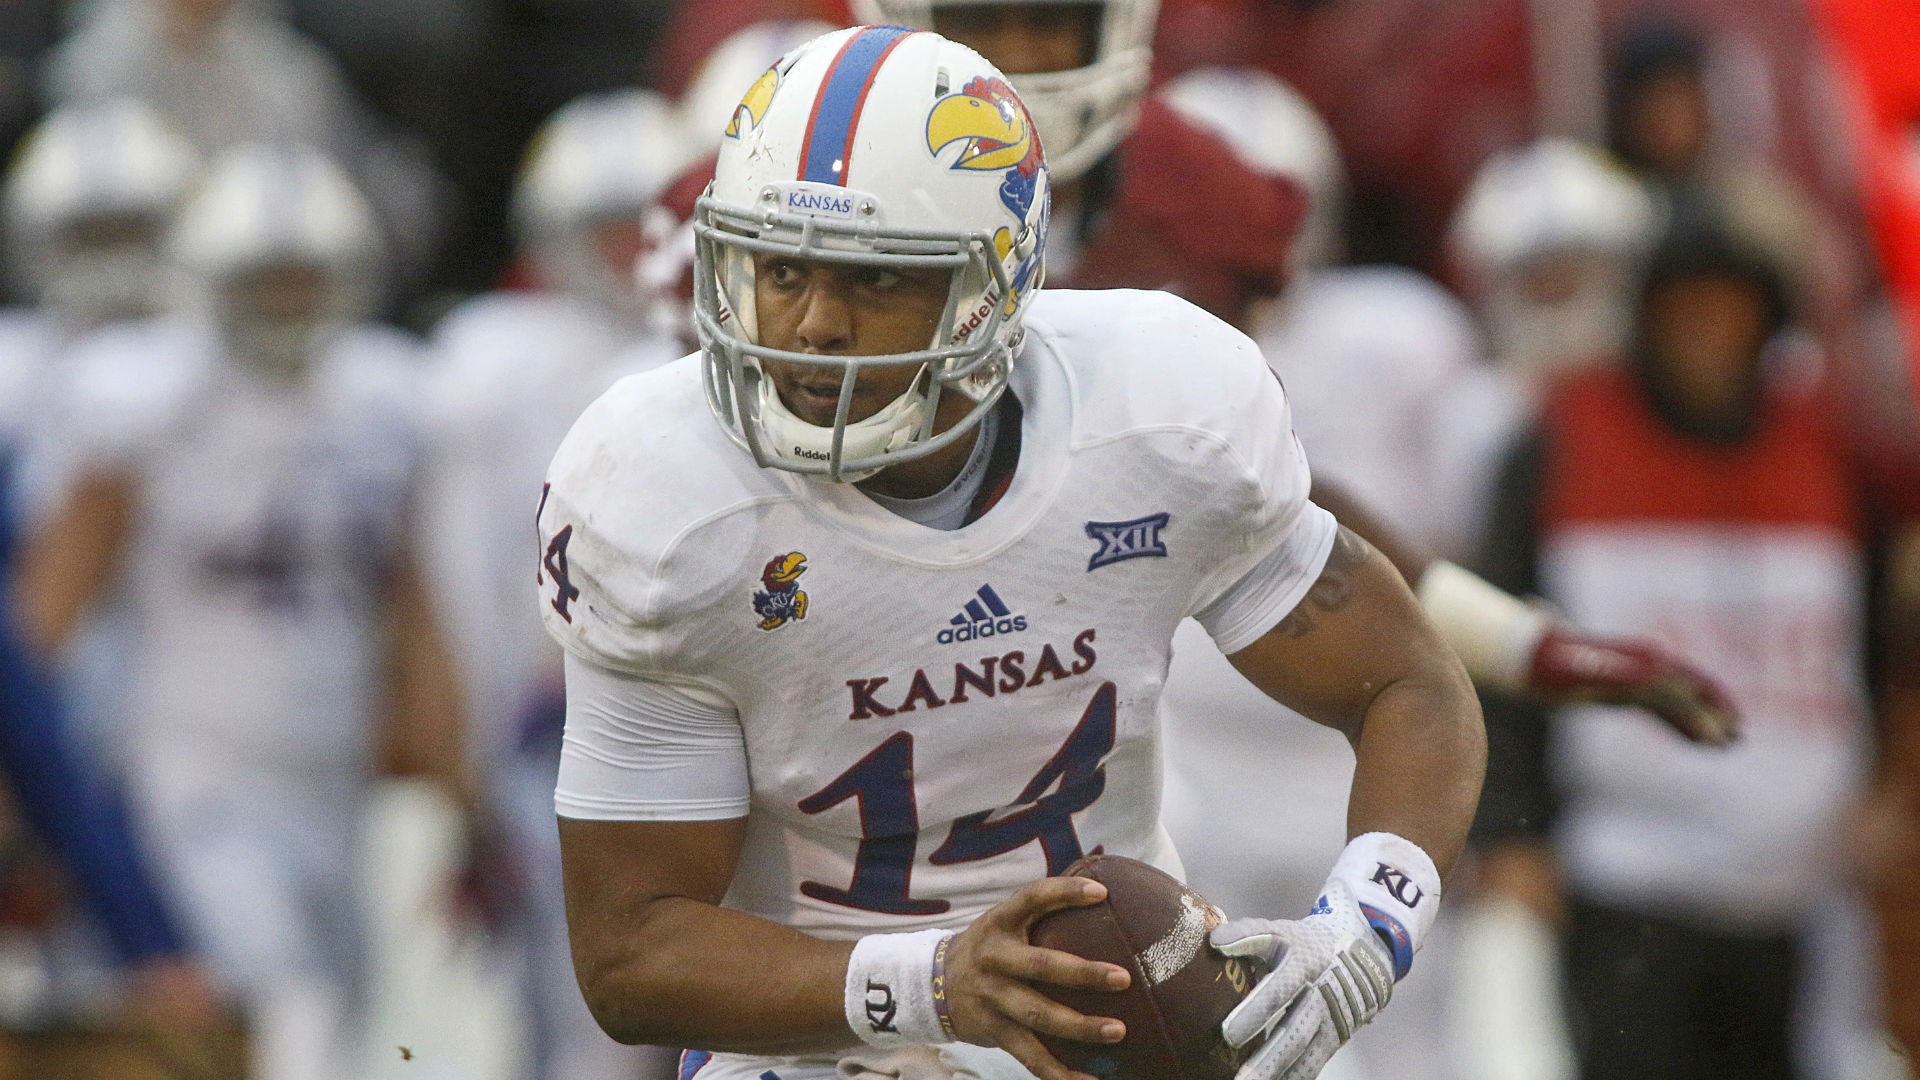 Kansas QB Michael Cummings will need knee surgery, coach says